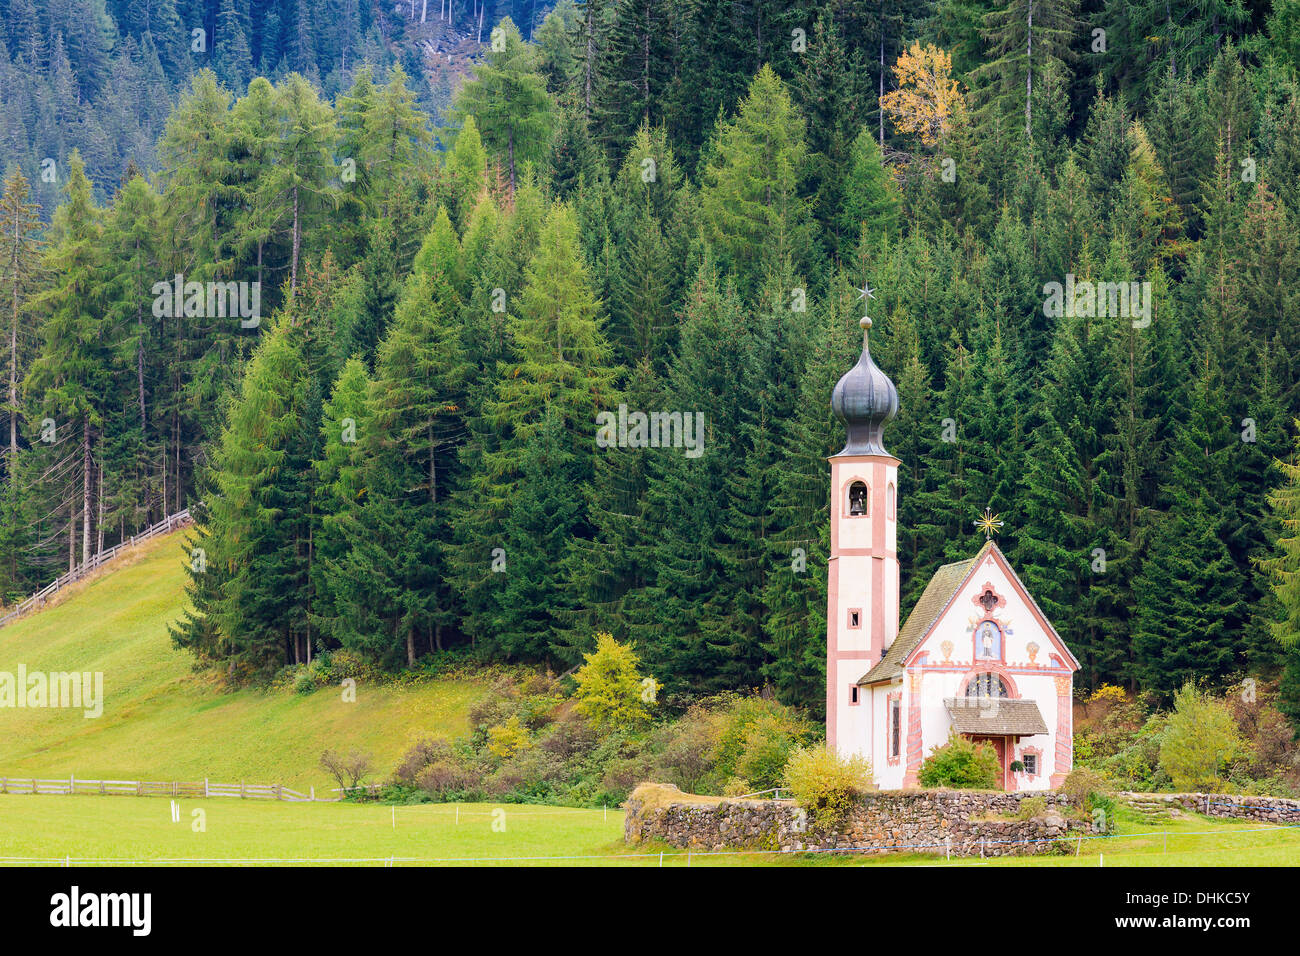 St. Johann (San Giovanni in Italian) chapel in Val di Funes in the Dolomites in northern Italy Stock Photo